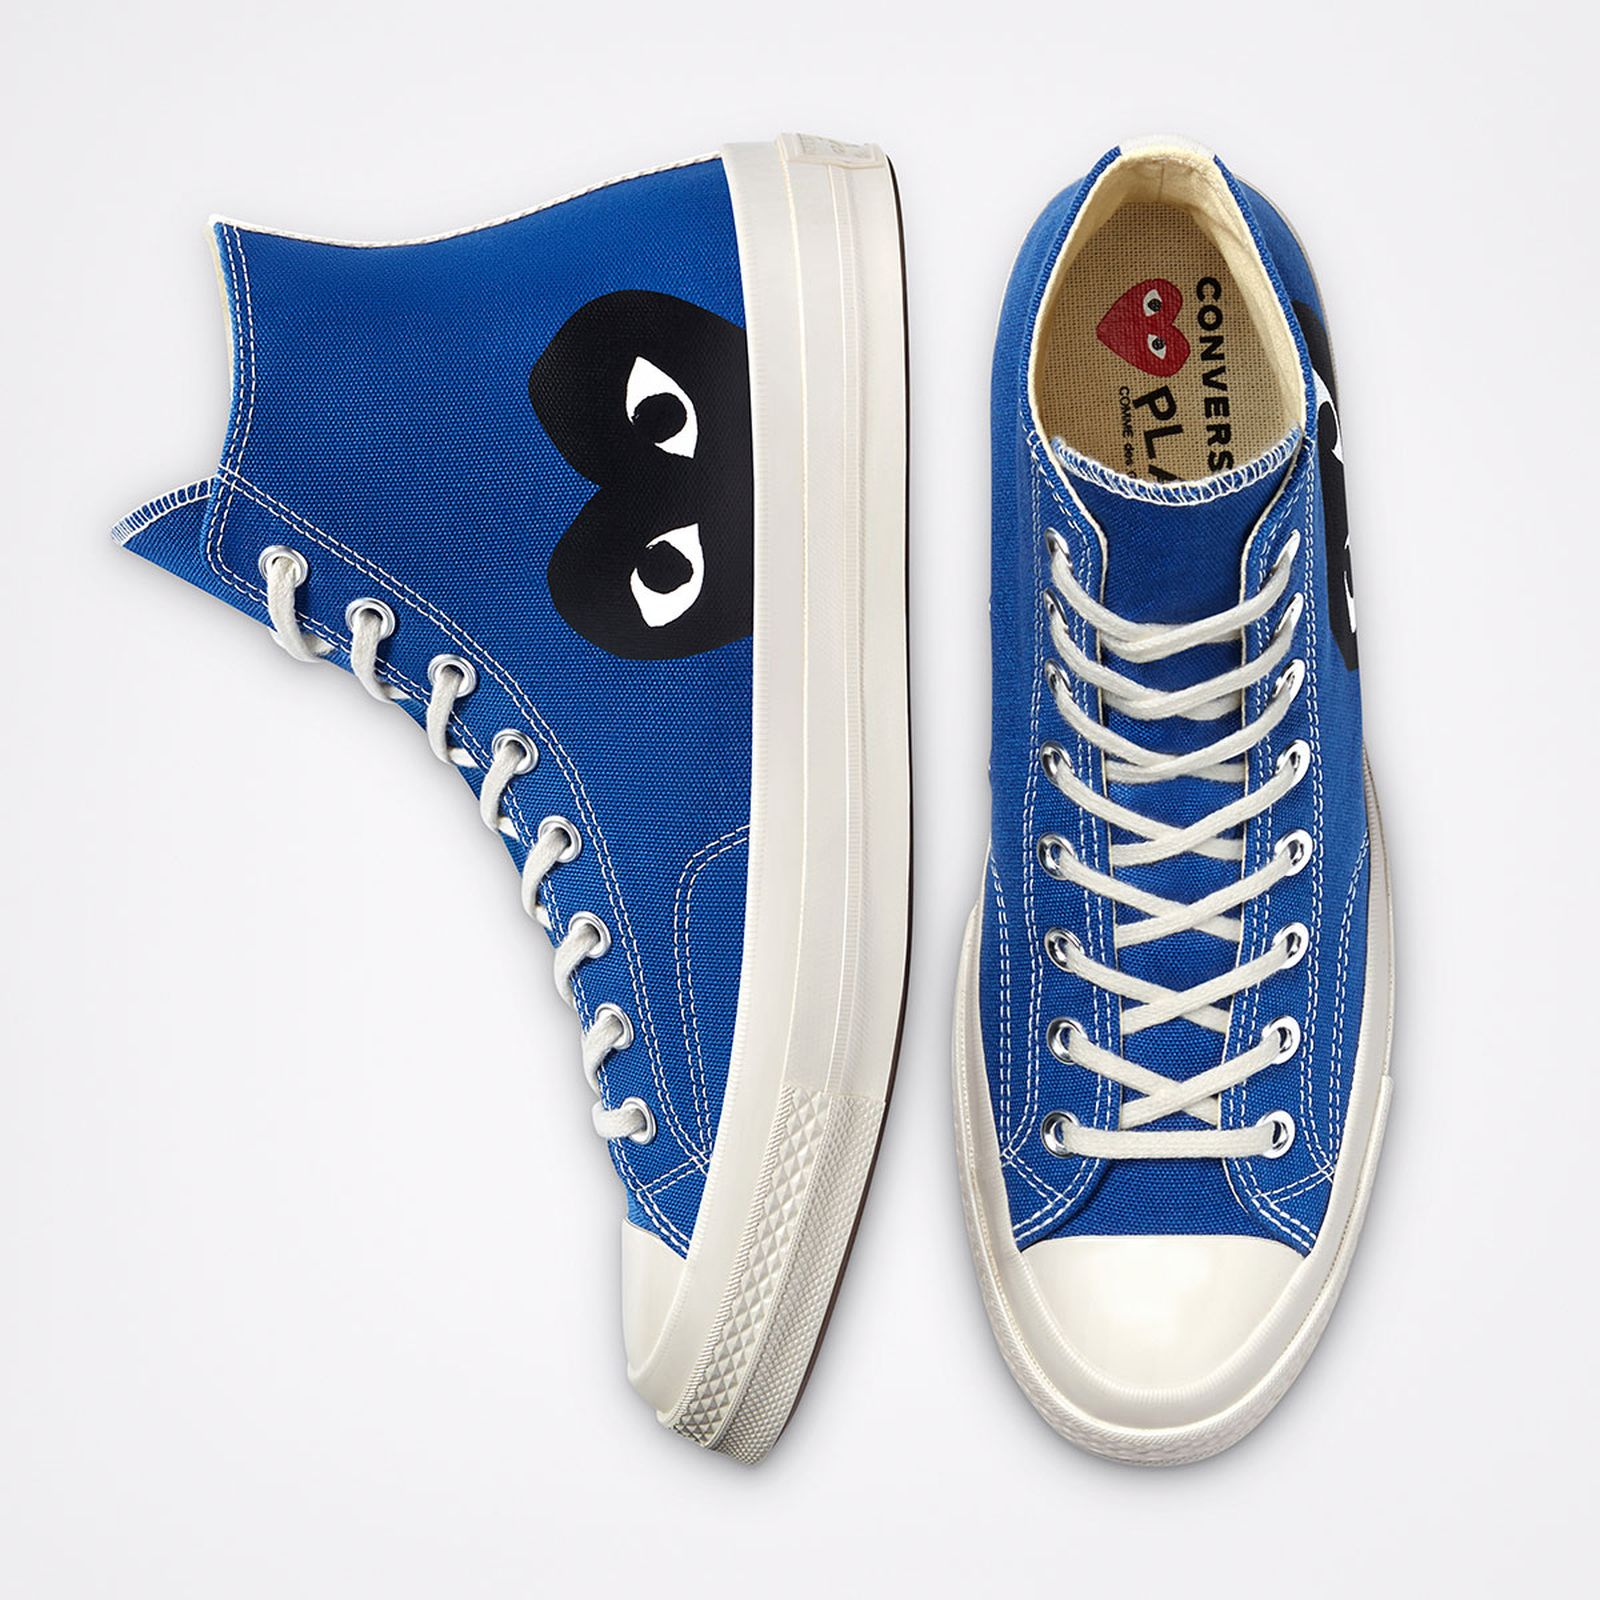 comme-des-garcons-play-converse-chuck-70-blue-gray-release-date-price-1-04